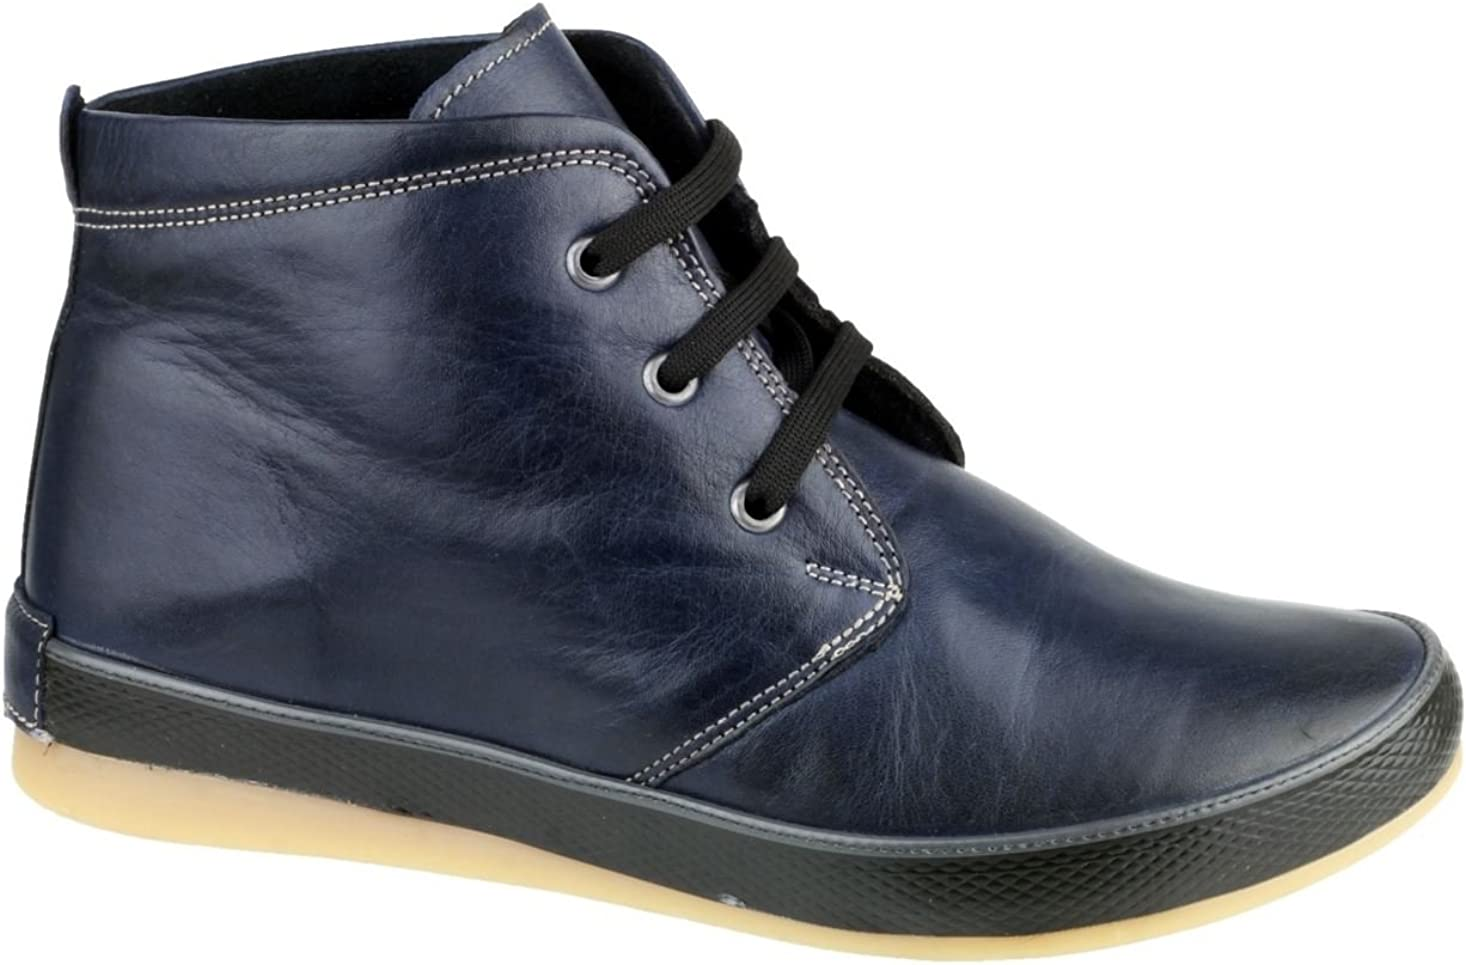 Cotswold Wdge Womens Navy Blue Flat